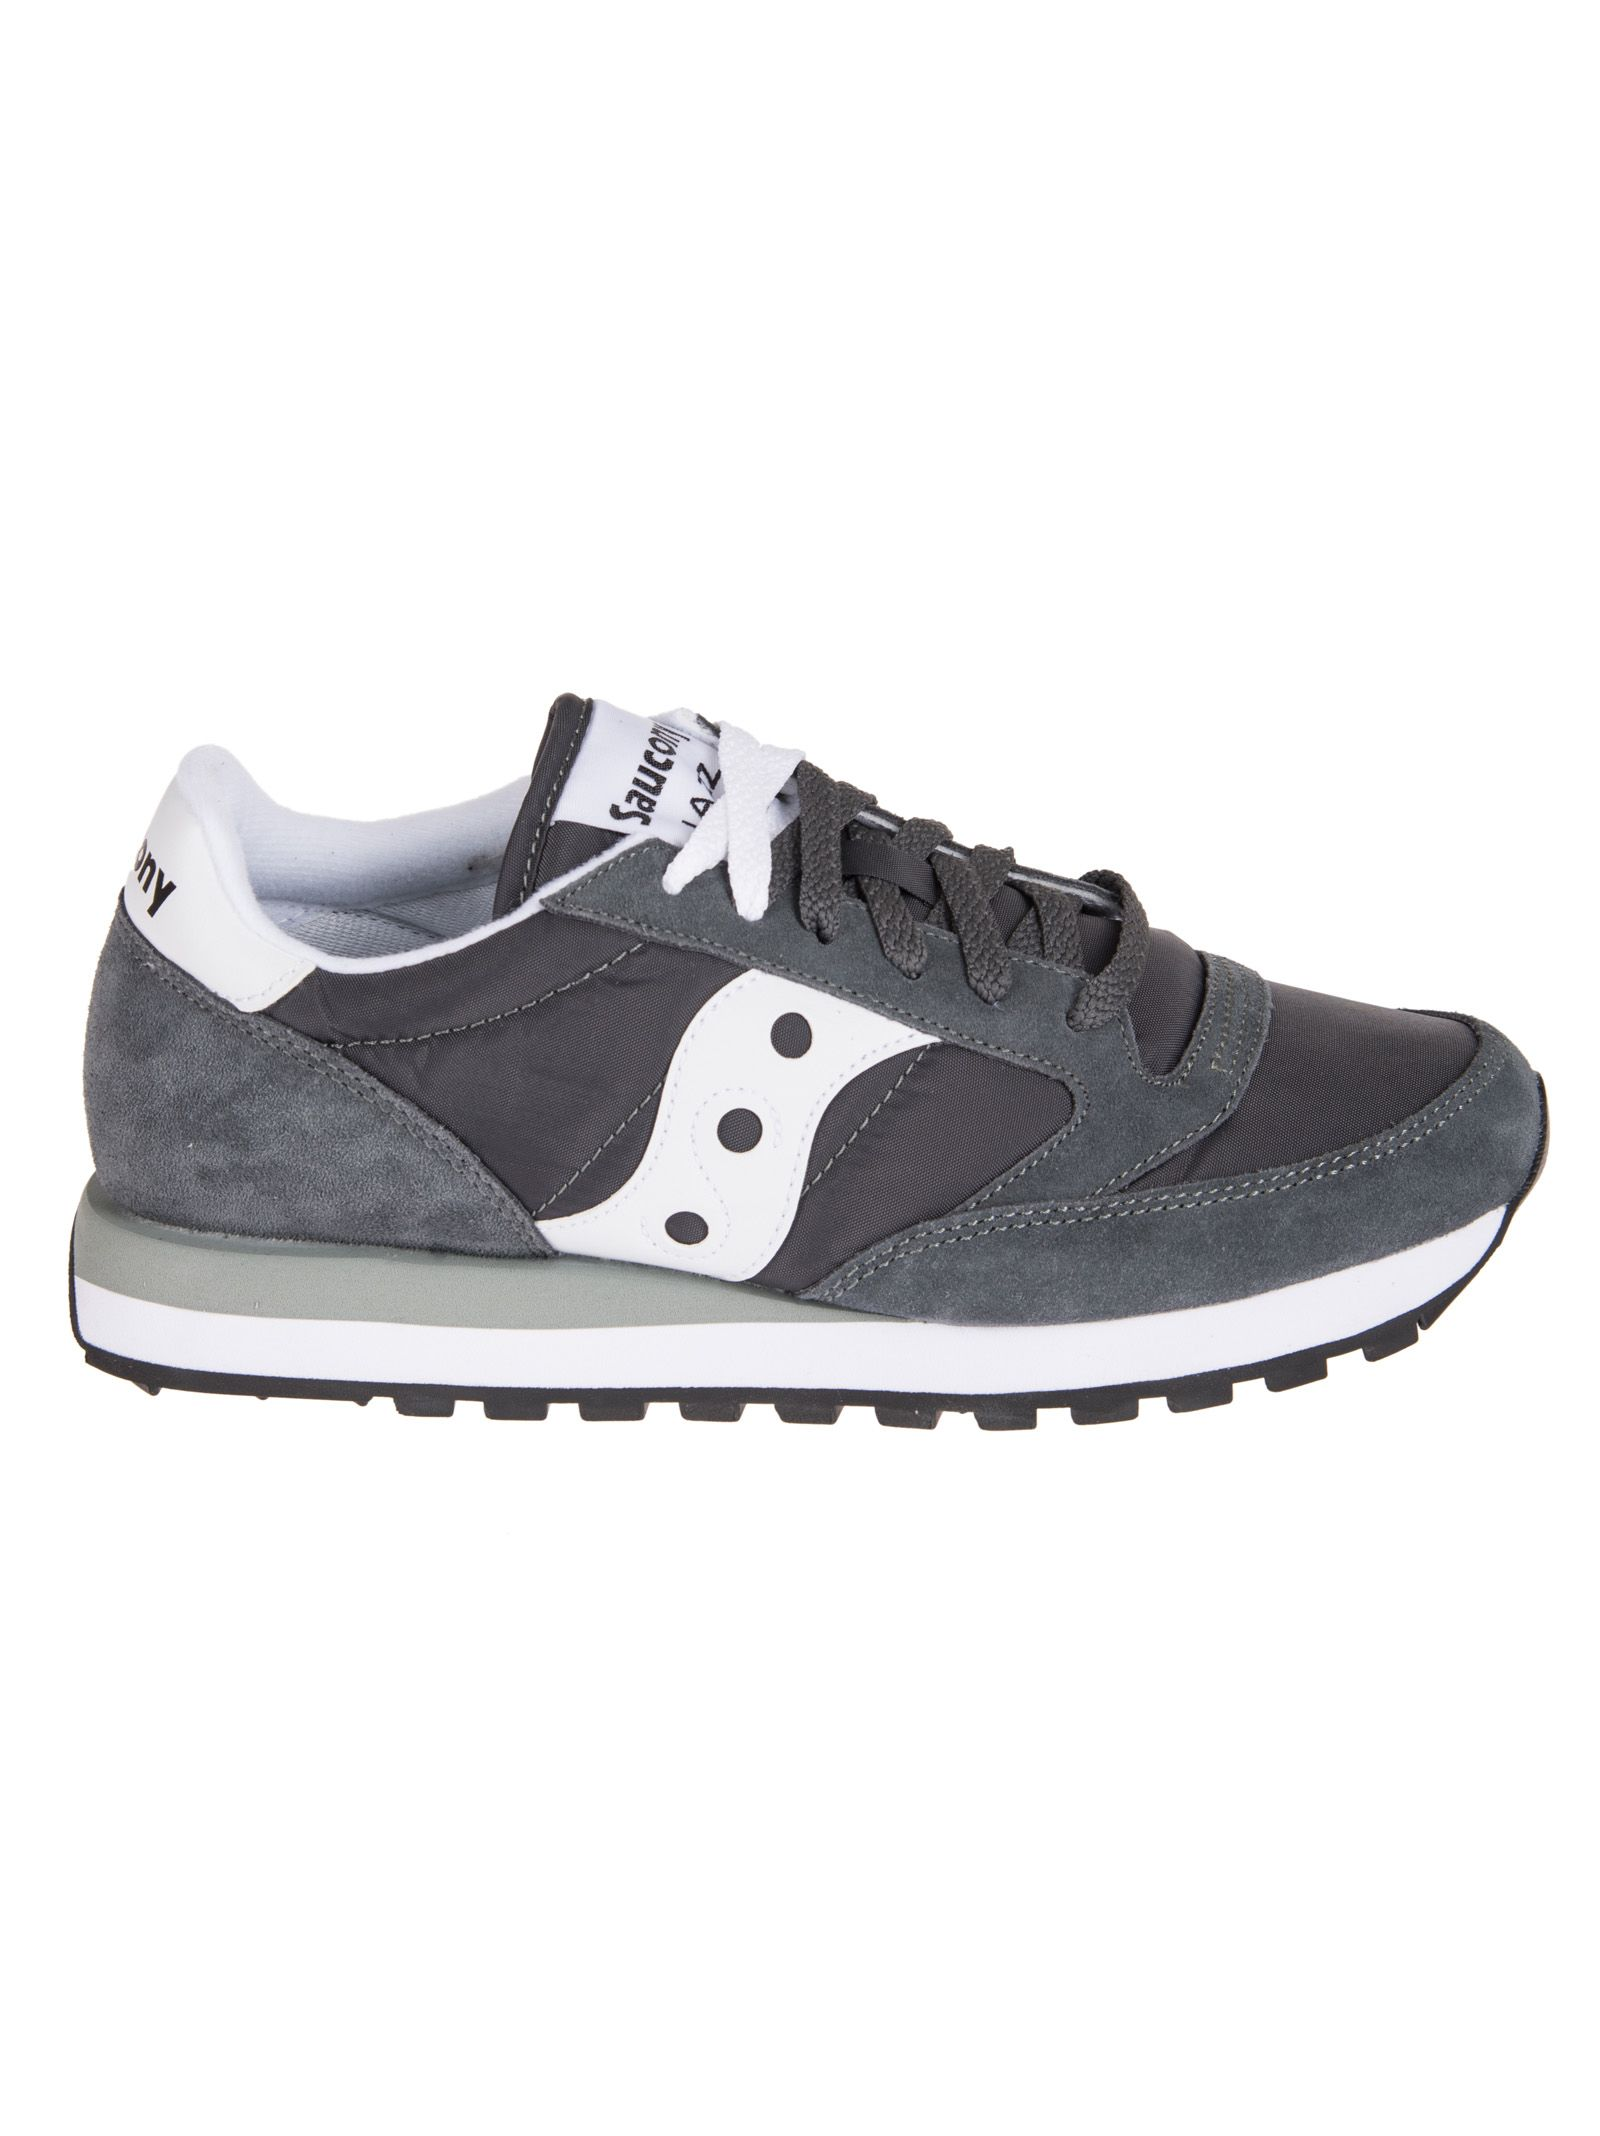 Jazz Original Sneakers Saucony: grey And White